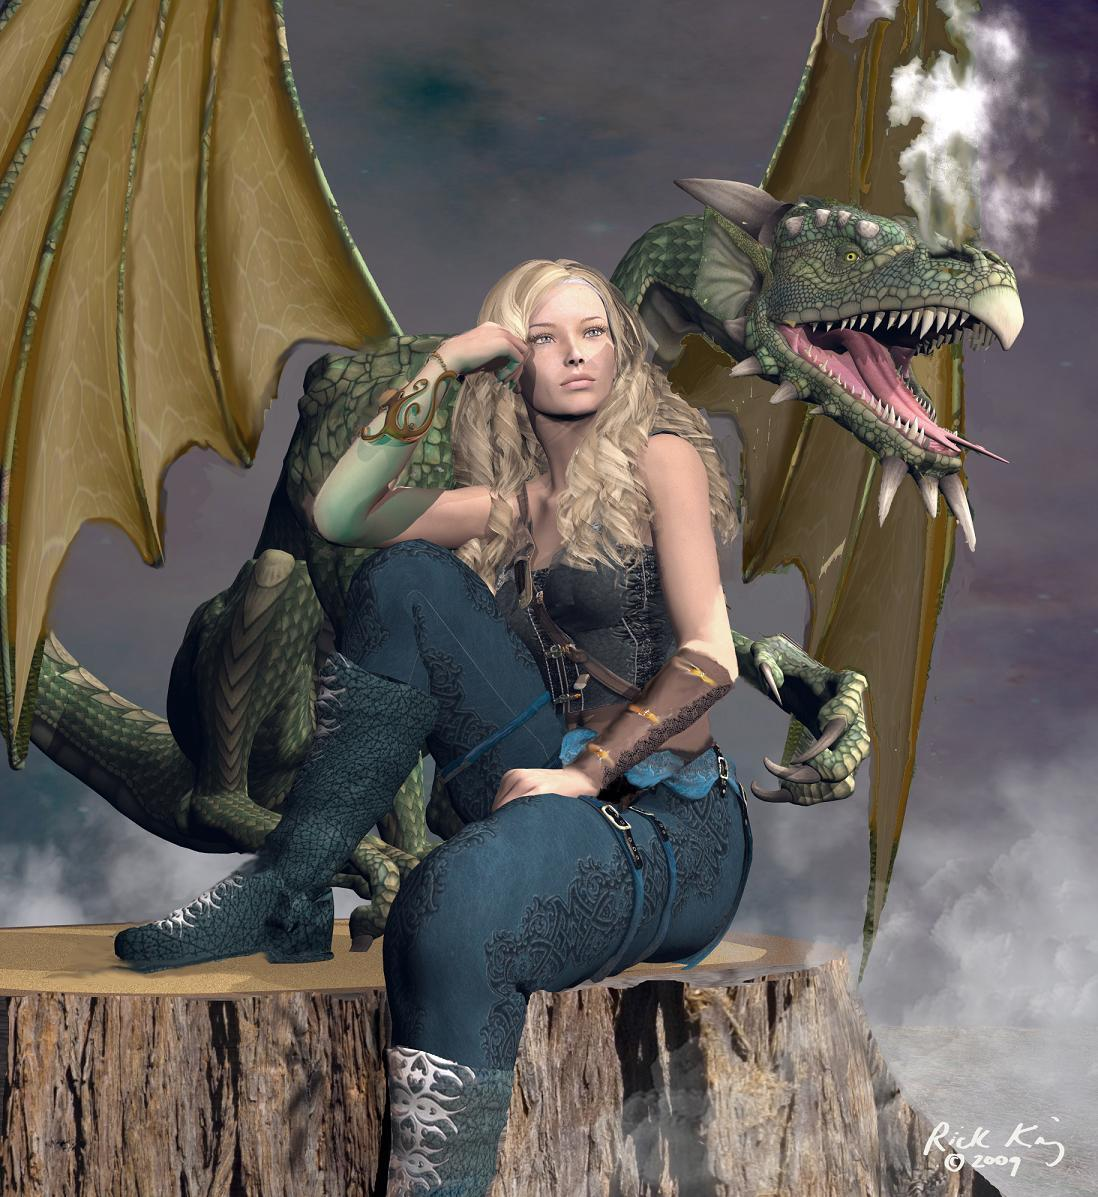 The Dragonwoman